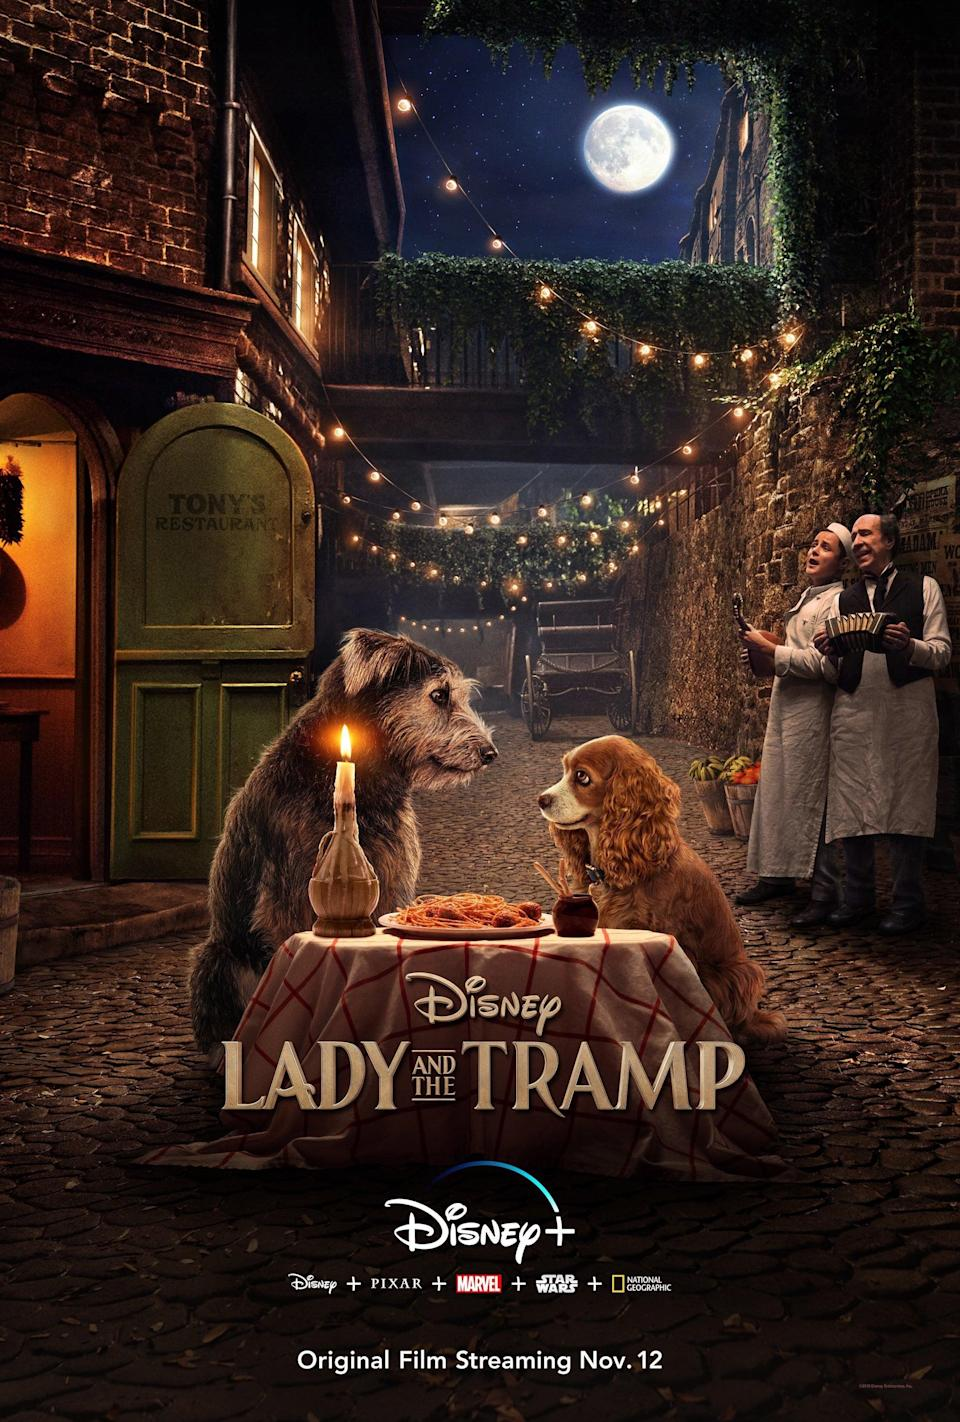 """<p> This <a href=""""https://www.popsugar.com/entertainment/Lady-Tramp-2019-Movie-Trailer-46538119"""" class=""""link rapid-noclick-resp"""" rel=""""nofollow noopener"""" target=""""_blank"""" data-ylk=""""slk:Disney reboot"""">Disney reboot</a> features an upper-class American cocker spaniel named Lady (Tessa Thompson) who was the center of her family's attention since the day she was adopted - until they had a baby. Quickly, Lady finds herself forgotten in the streets, where she meets a stray named Tramp (Justin Theroux), and falls in love. Galavanting around town together, the dogs form a relationship that we all can learn from. </p>"""